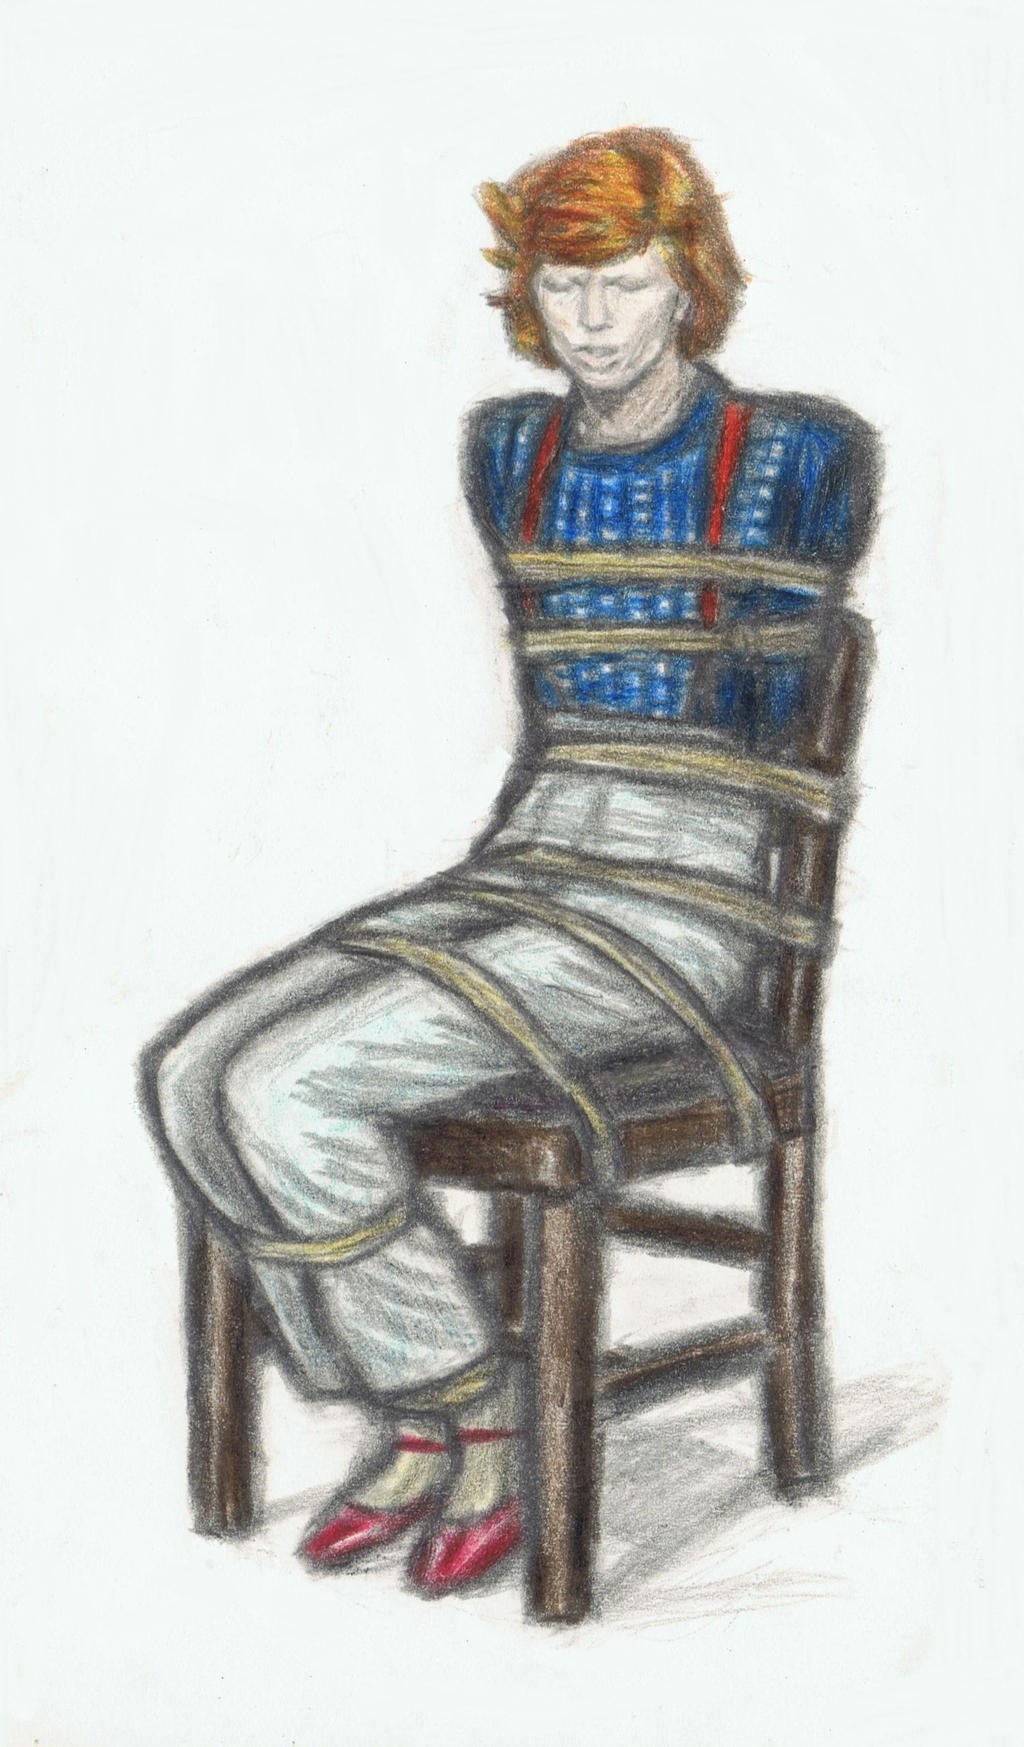 Cracked Actor tied to a chair by gagambo